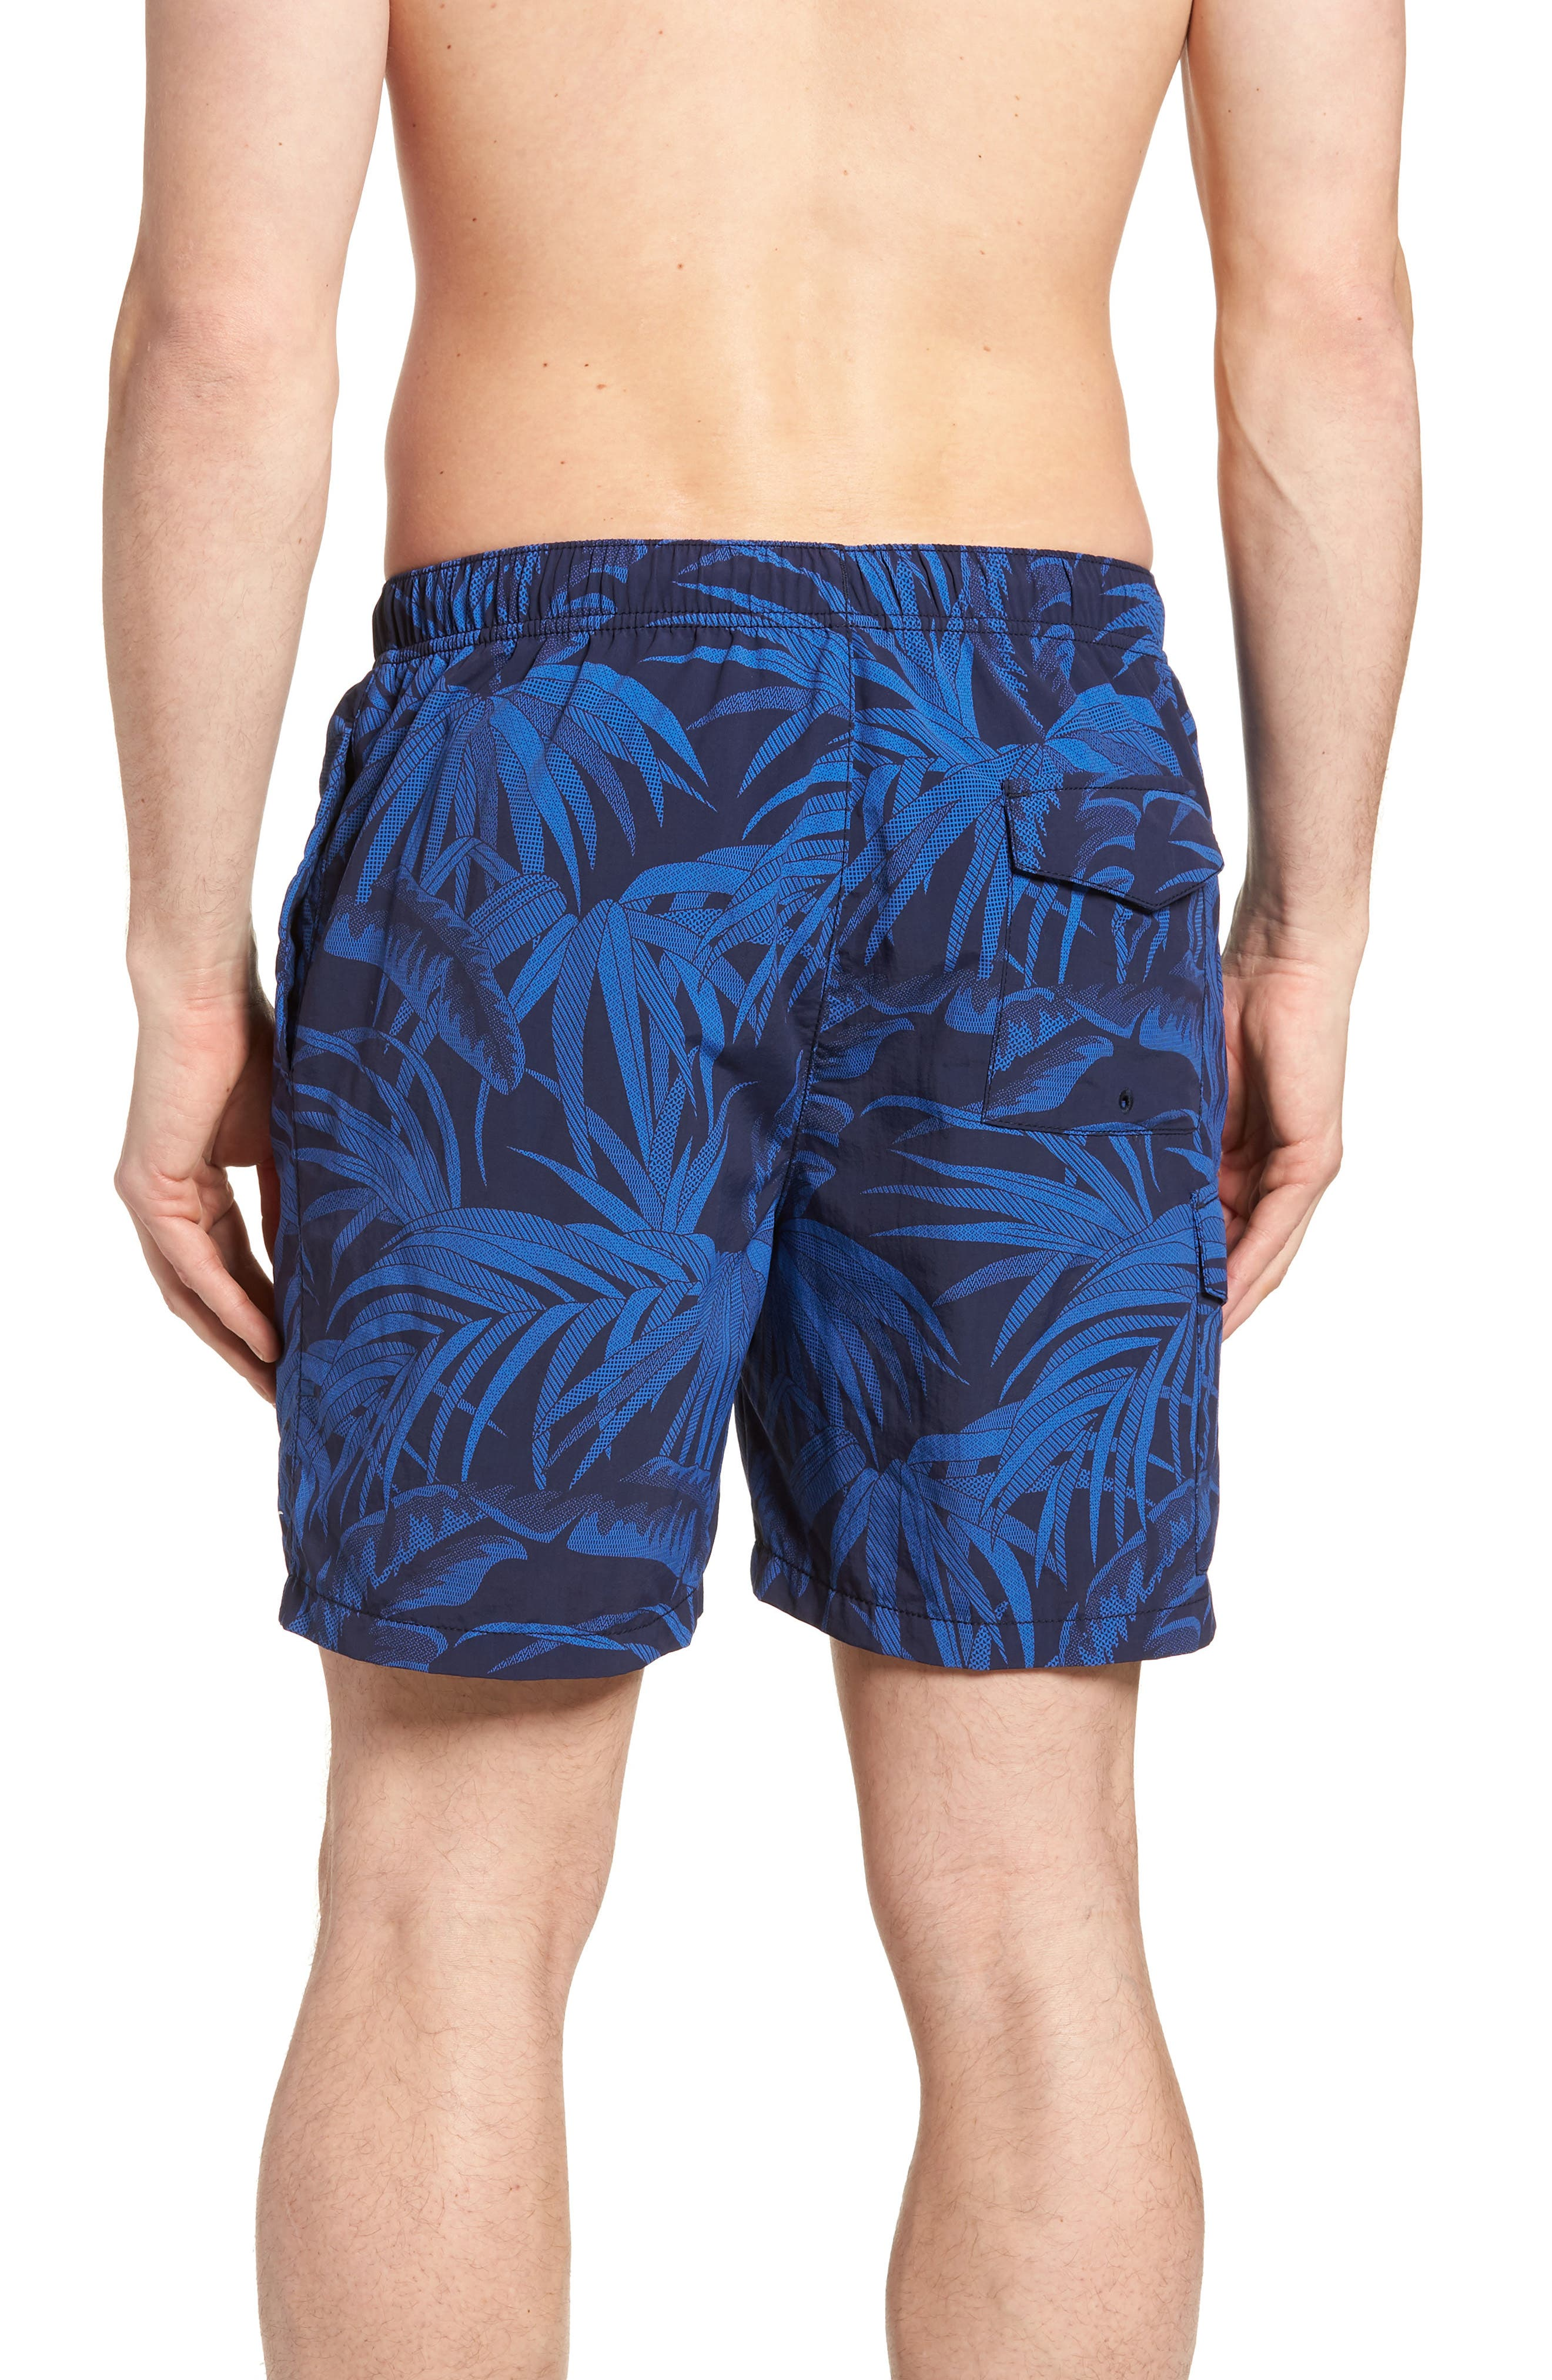 Naples Midnight Flora Swim Trunks,                             Alternate thumbnail 2, color,                             400